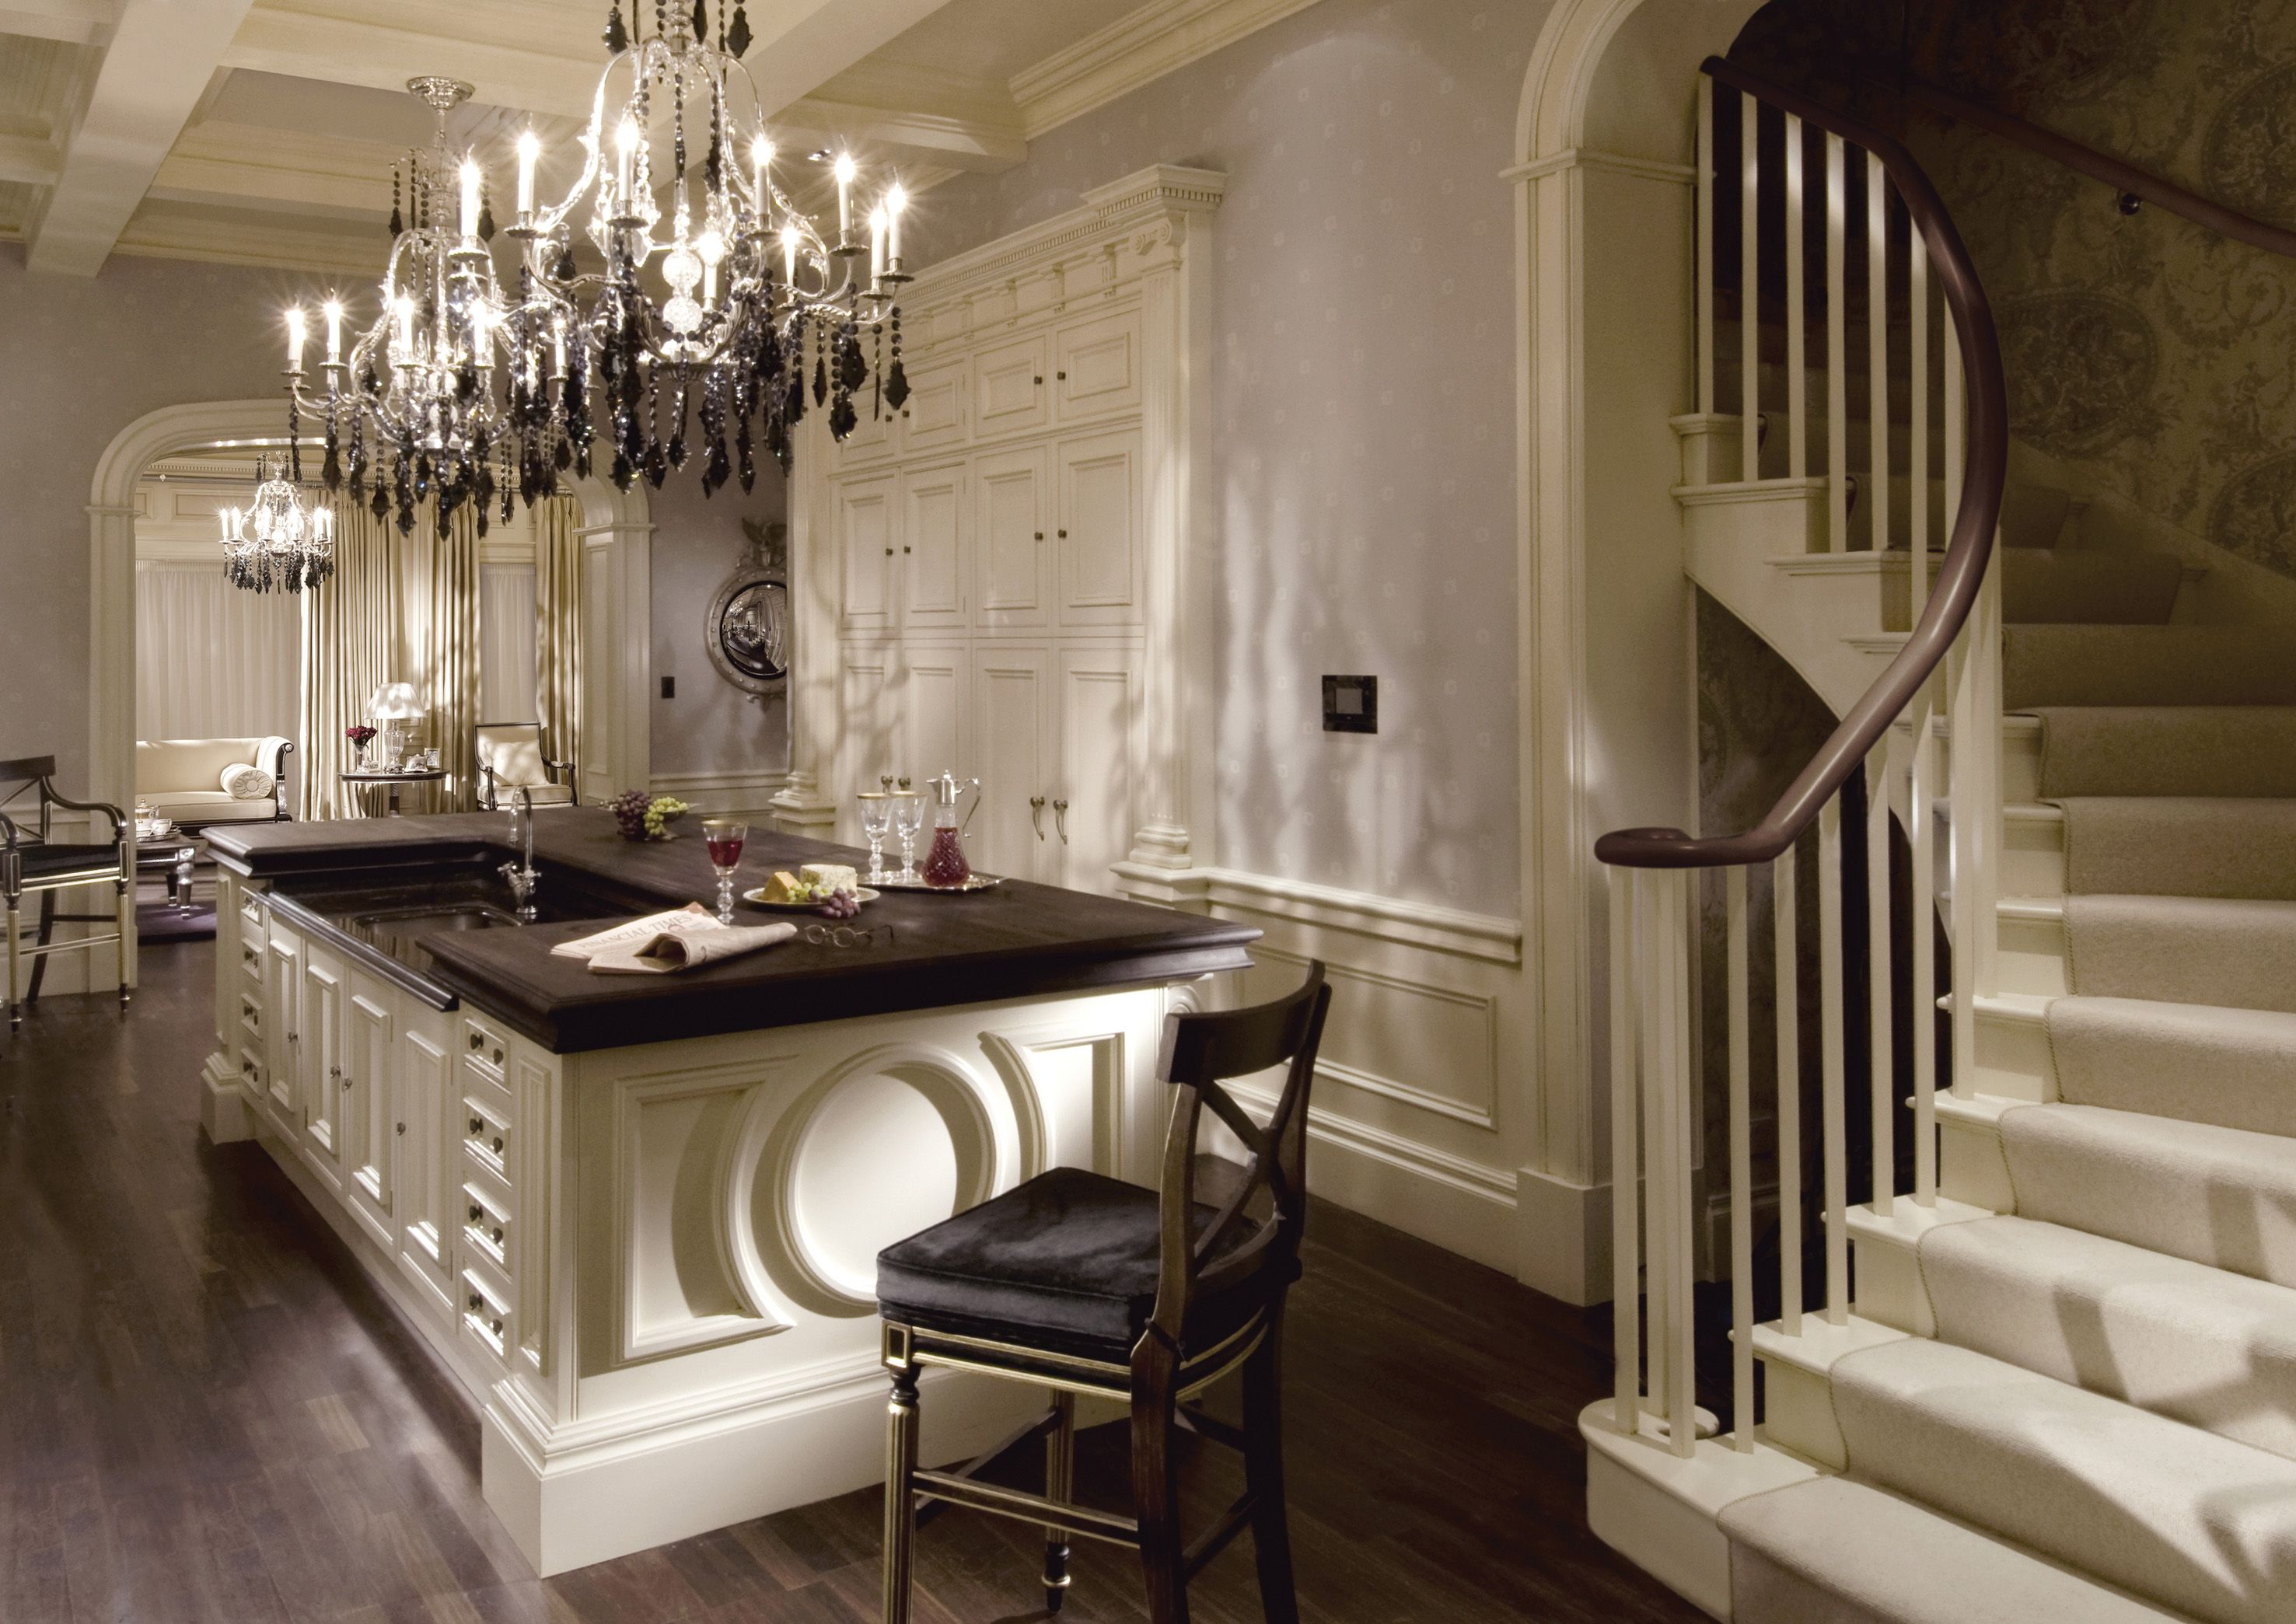 Architectural kitchen and lounge architectural pinterest kitchens